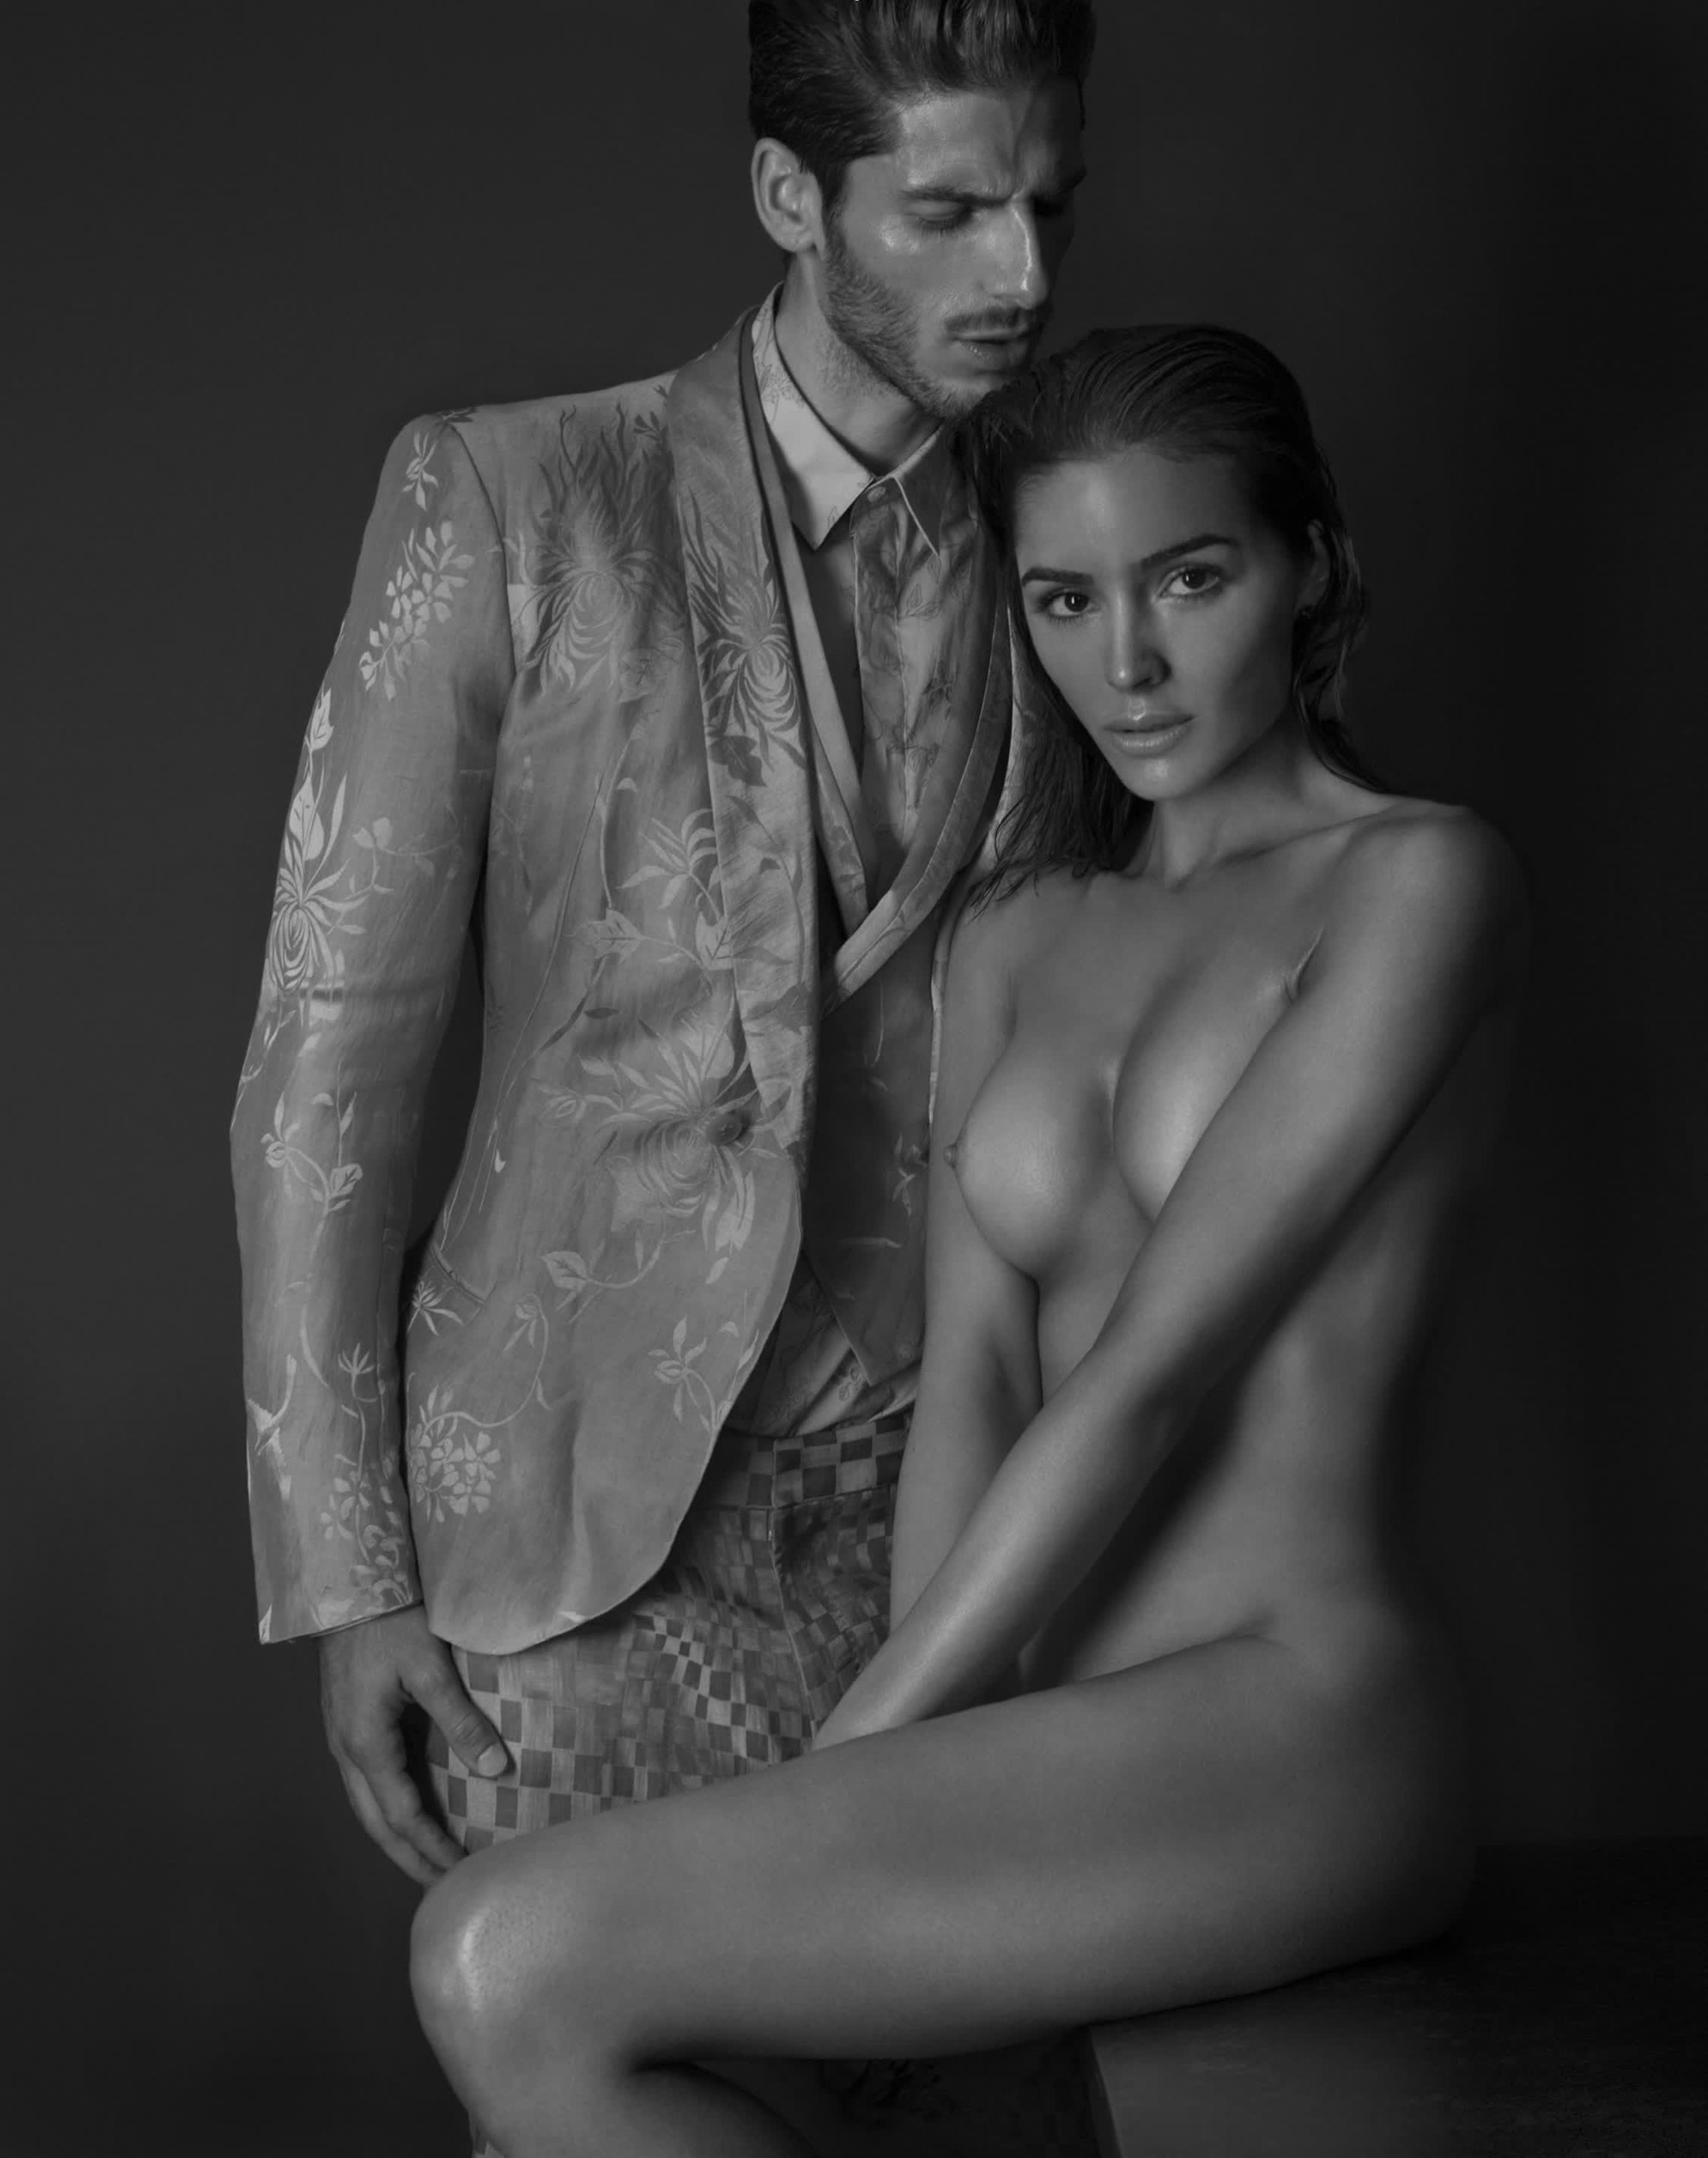 Olivia Culpo and Adam Nicklas by Tony Duran / Treats! Magazine issue 09